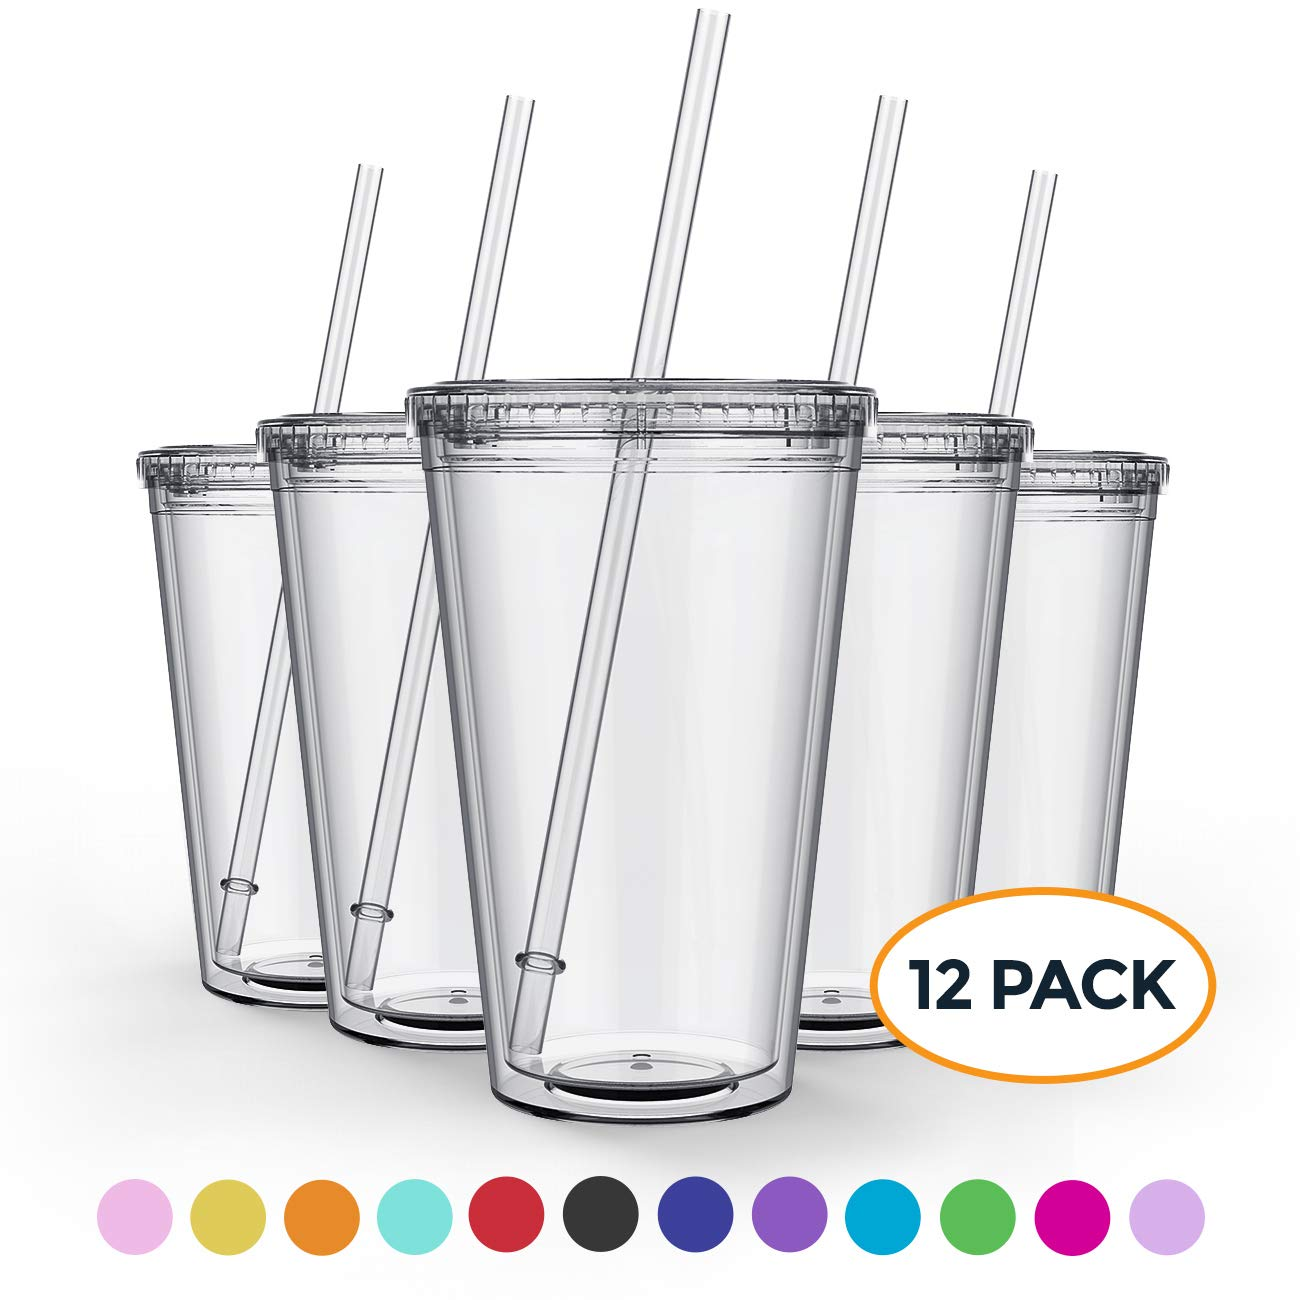 Maars Clear Classic Insulated Tumblers 16 oz. | Double Wall, Reusable Plastic Acrylic | Perfect for Parties, Birthdays, Customization - 12 Pack Bulk